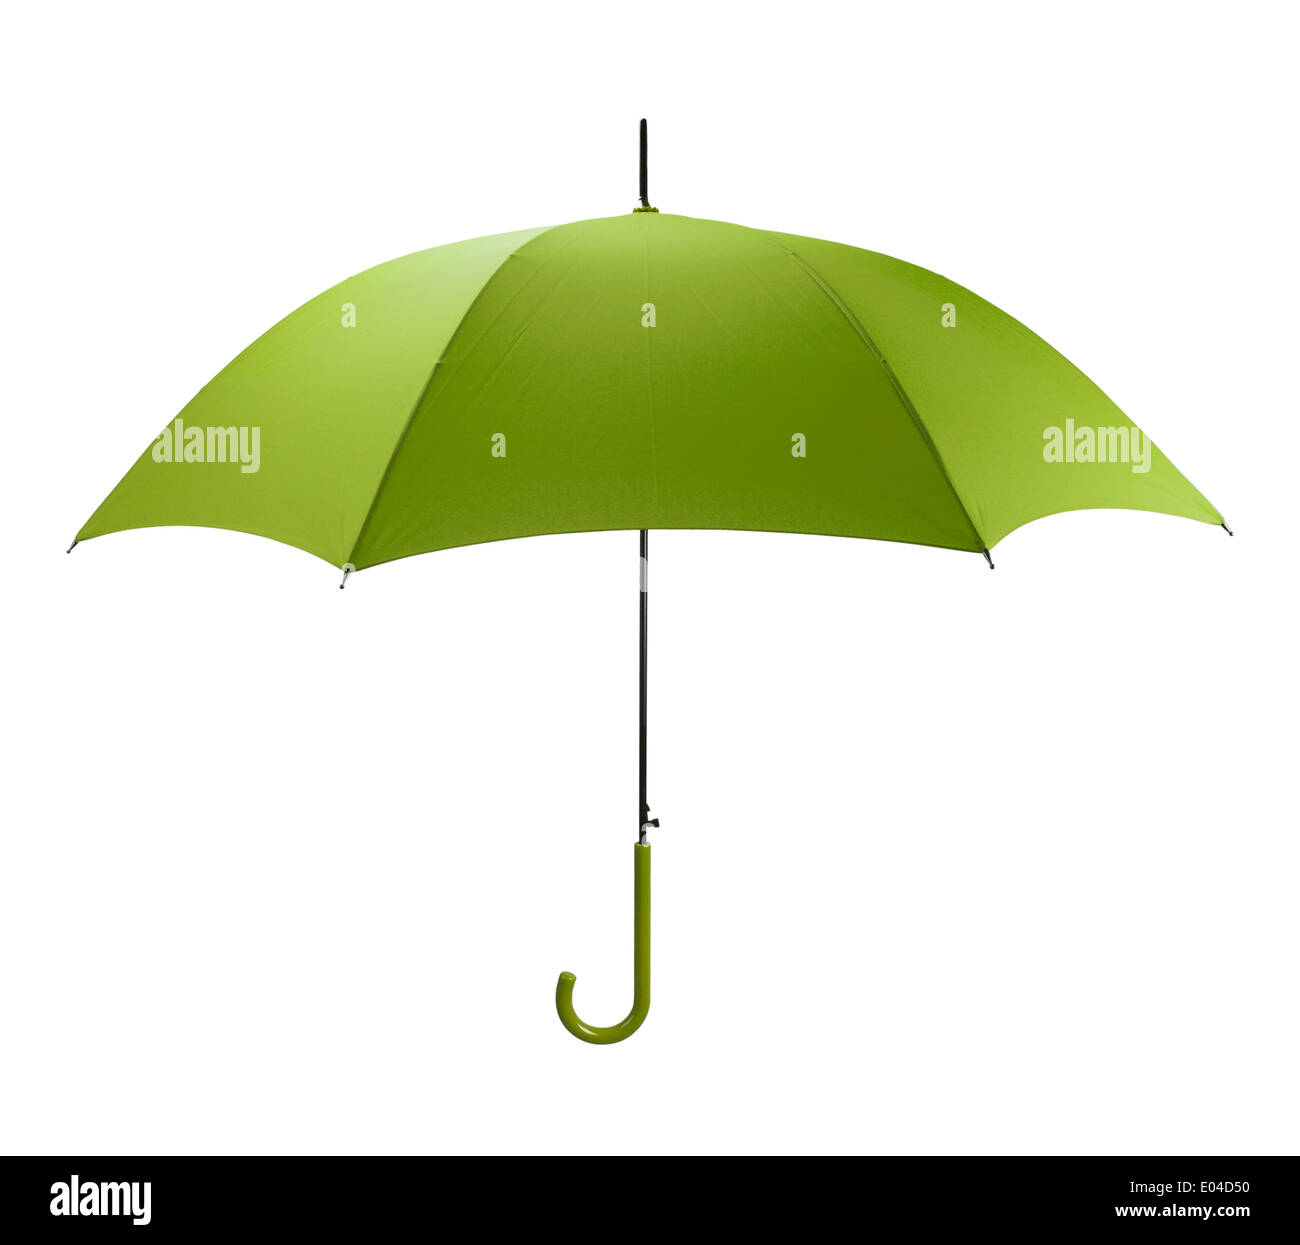 Bright Green Umbrella Side View Isolated on White Background. - Stock Image